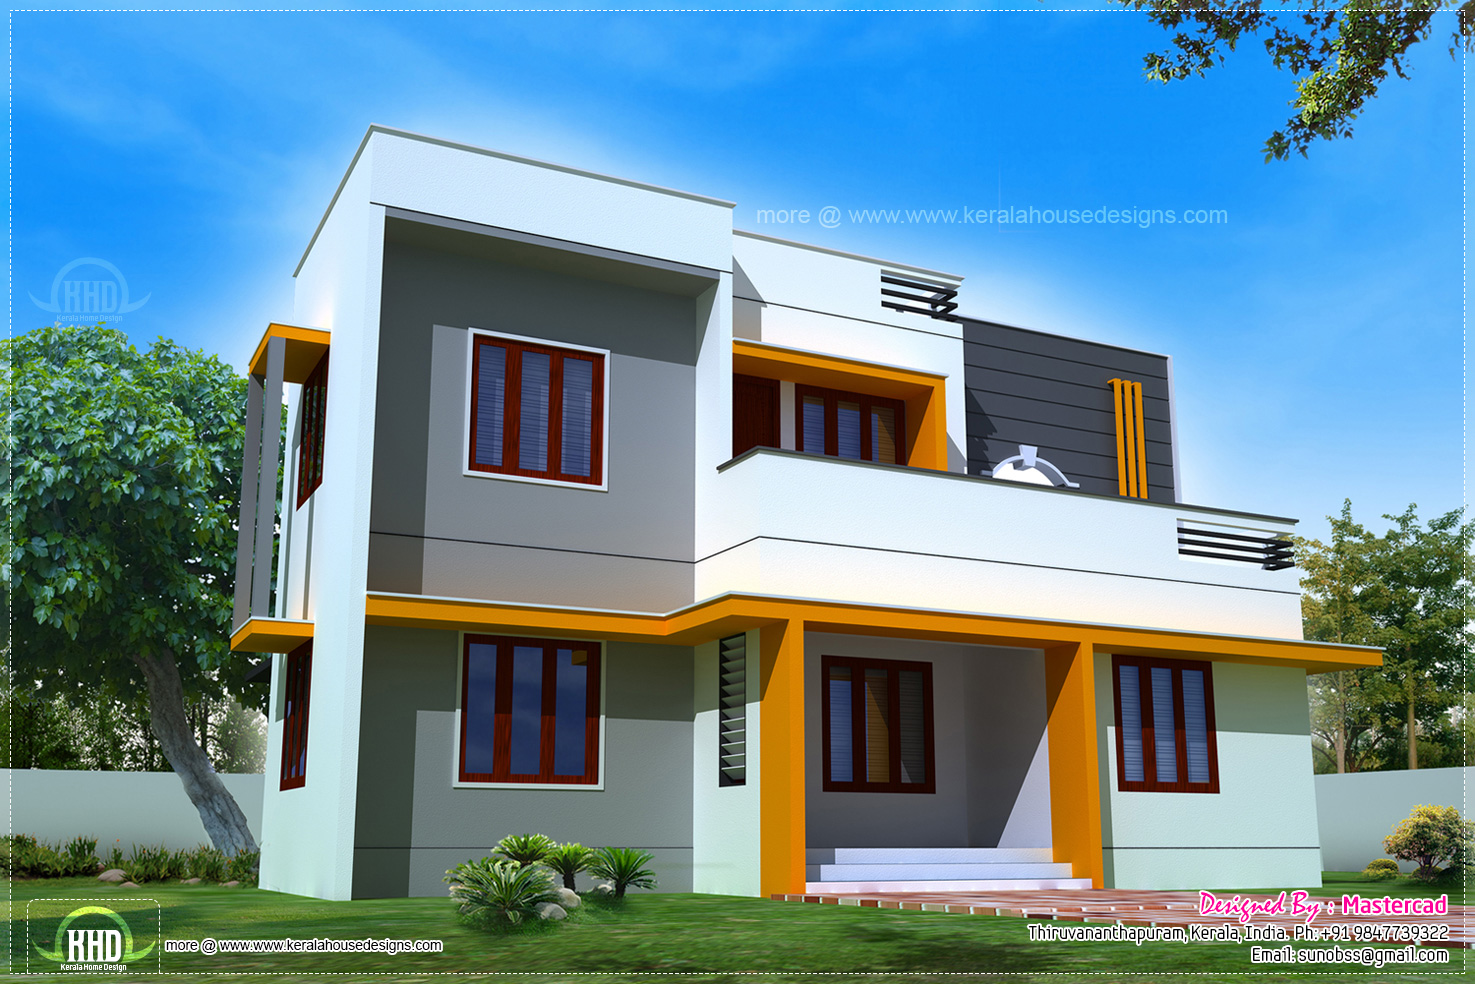 1400 modern contemporary home exterior kerala home design and floor plans - Contemporary house designs ...